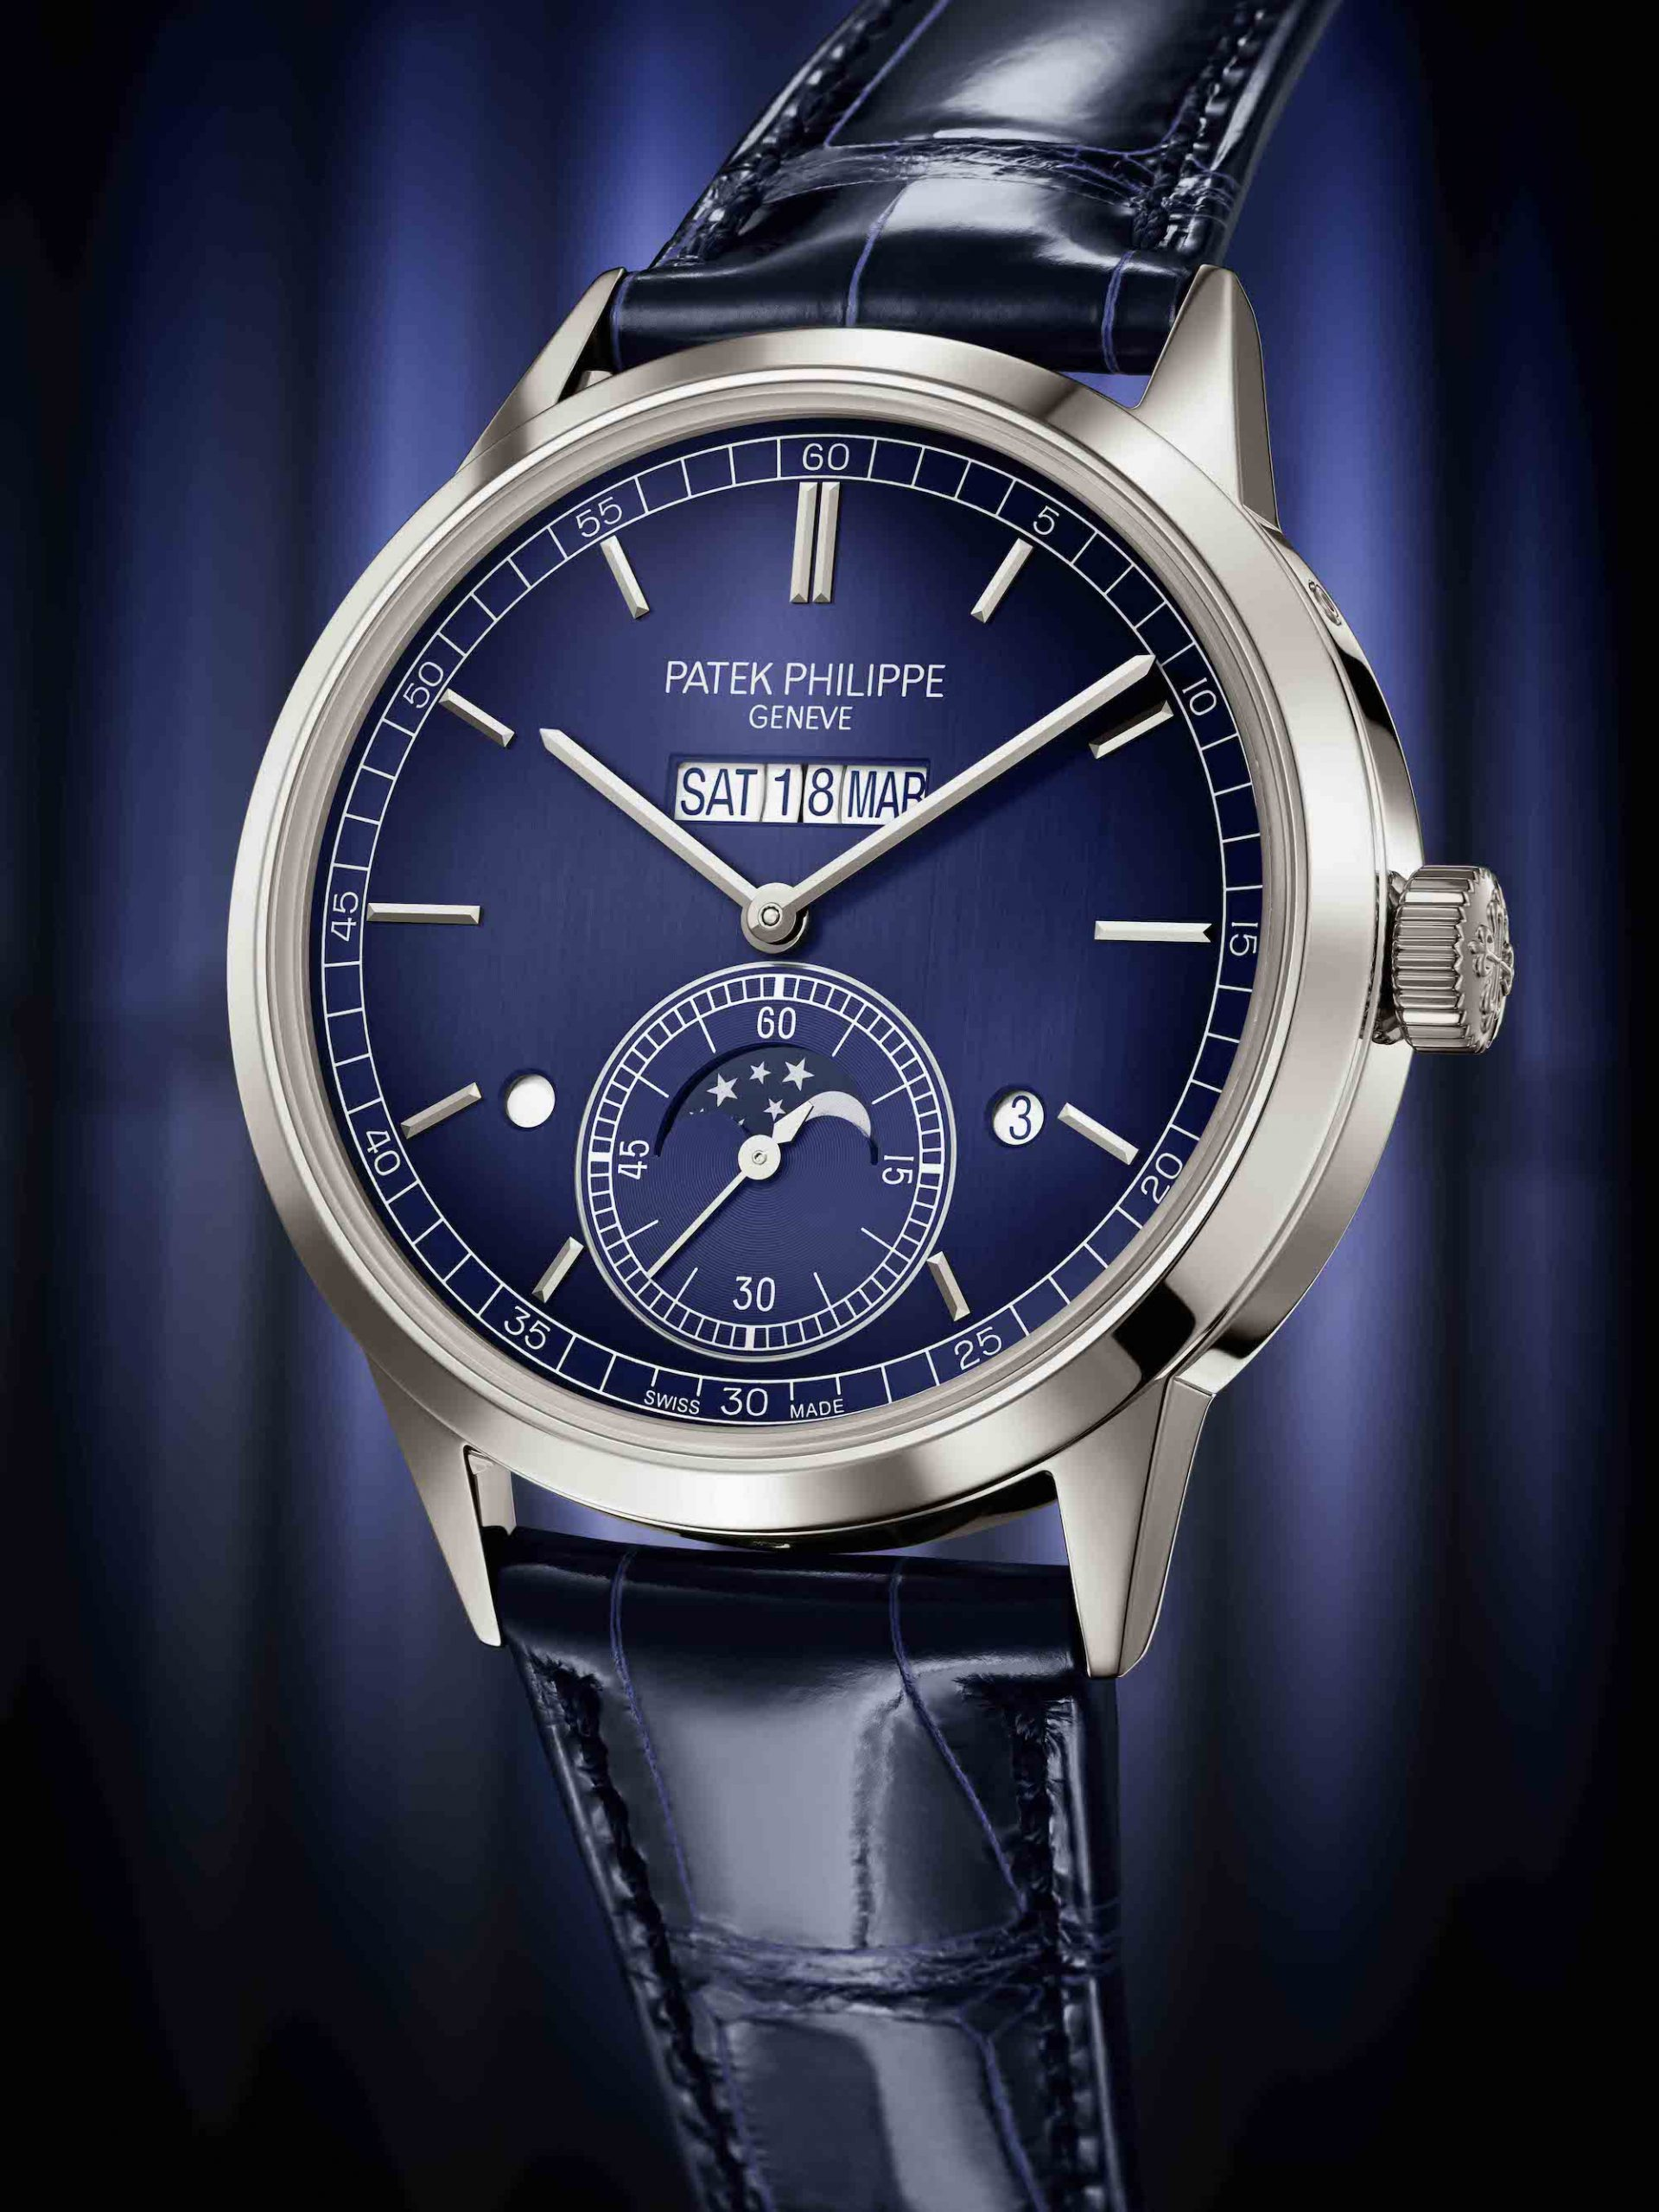 Patek Philippe Ref. 5236P in-line perpetual calendar watch, Watches & Wonders 2021